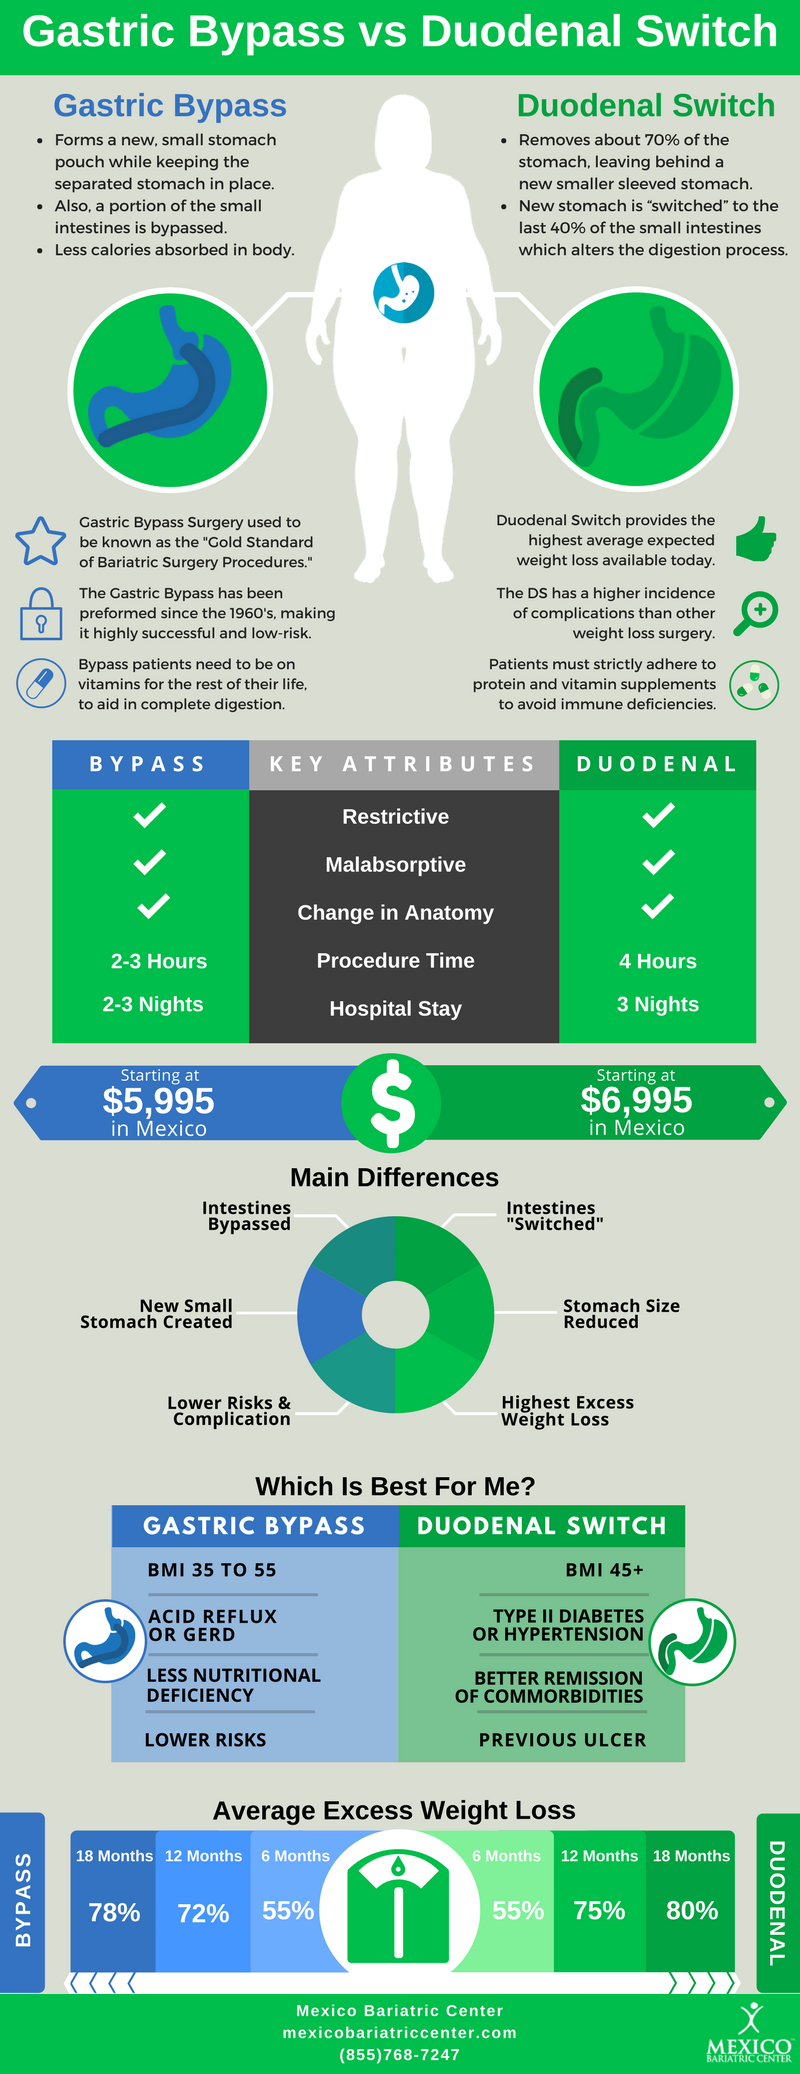 Gastric Bypass vs Duodenal Switch Infographic